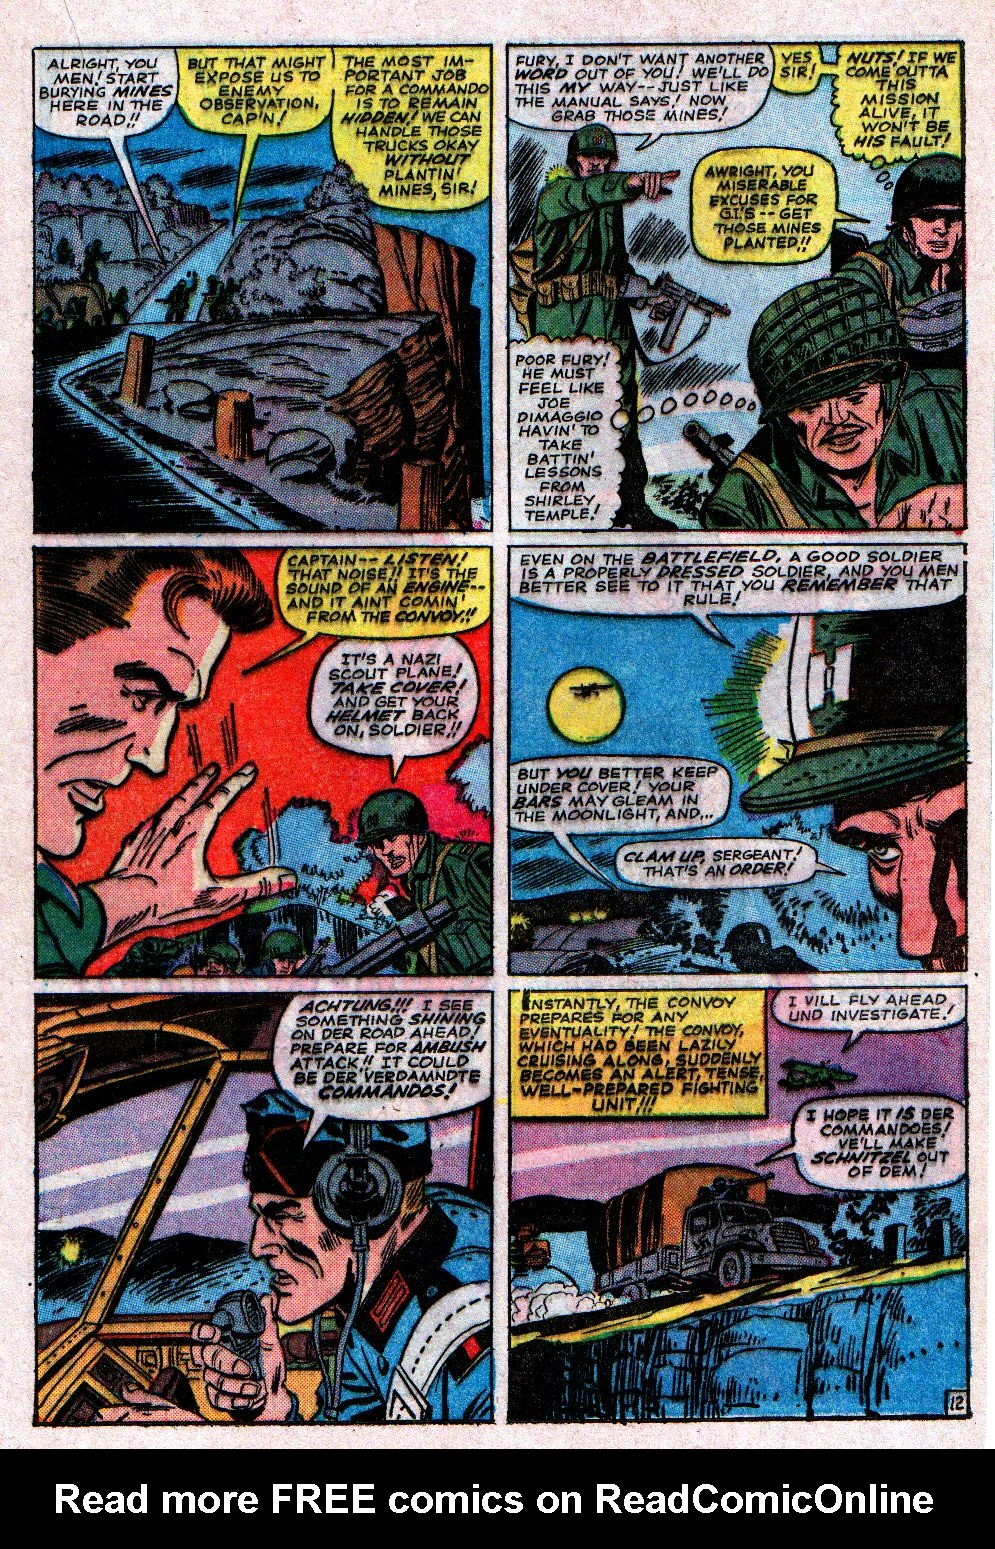 Read online Sgt. Fury comic -  Issue #11 - 17